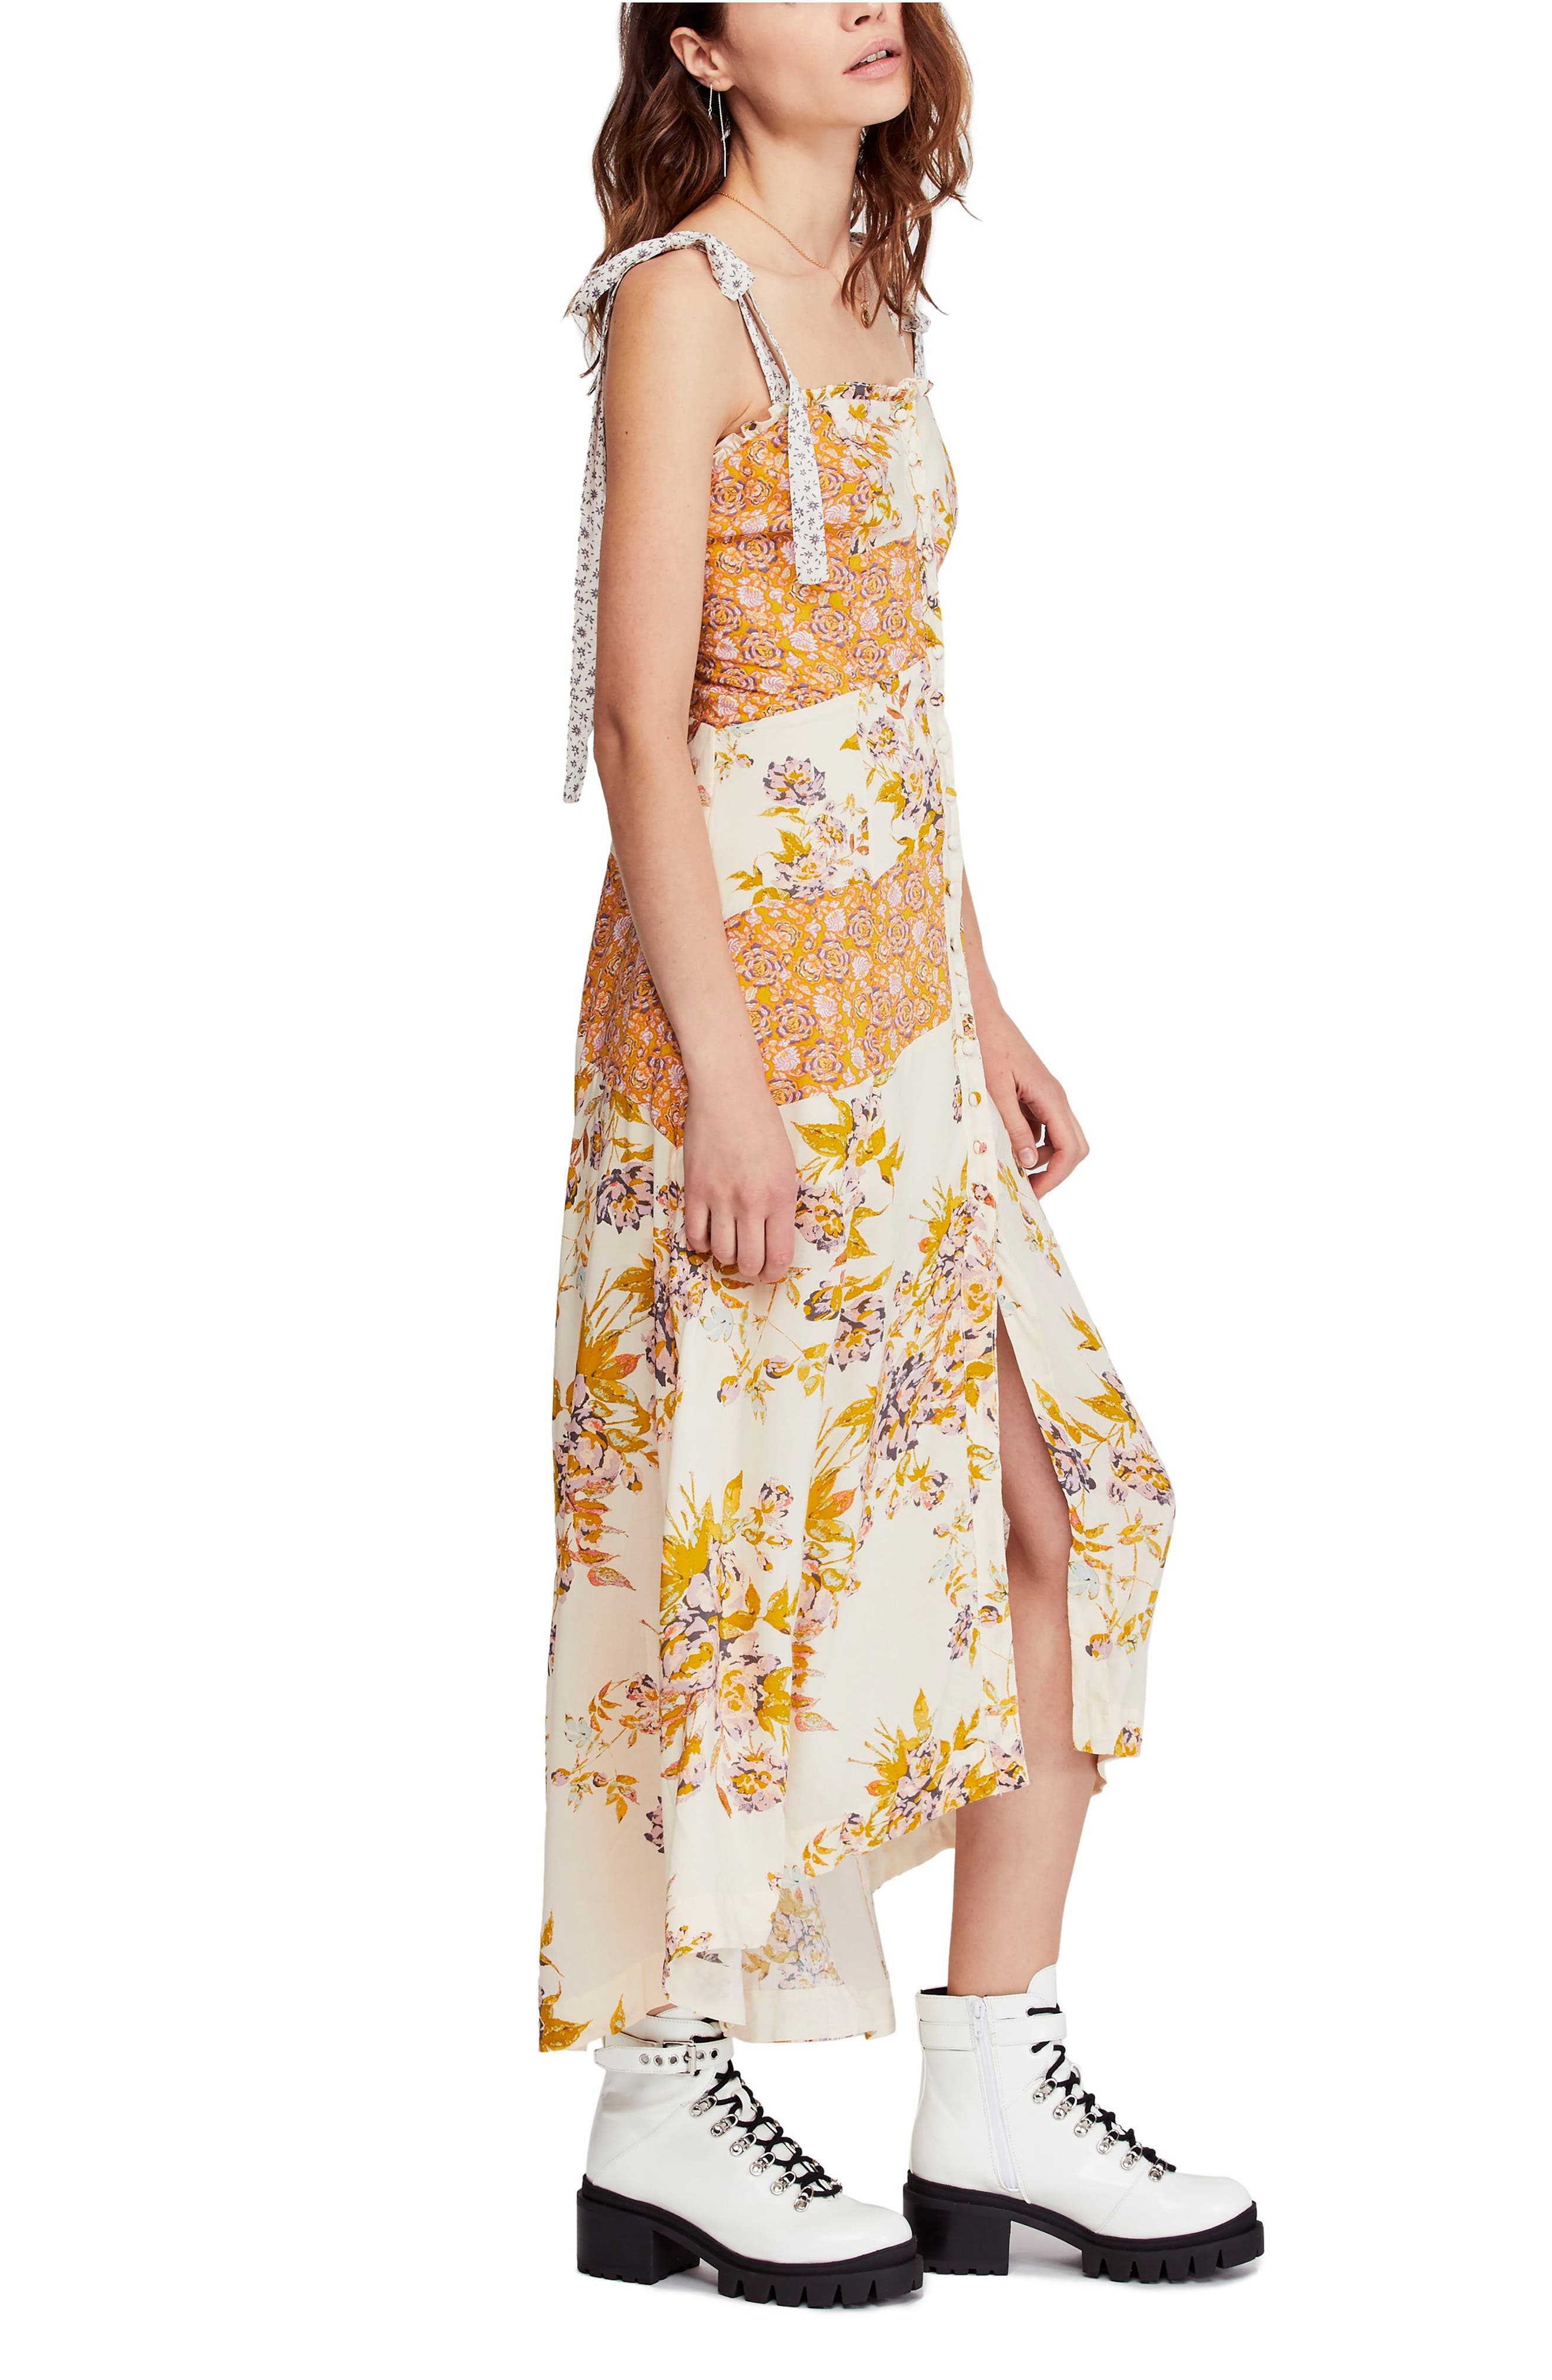 FREE PEOPLE, Lover Boy Maxi Dress, Alternate thumbnail 4, color, NEUTRAL COMBO